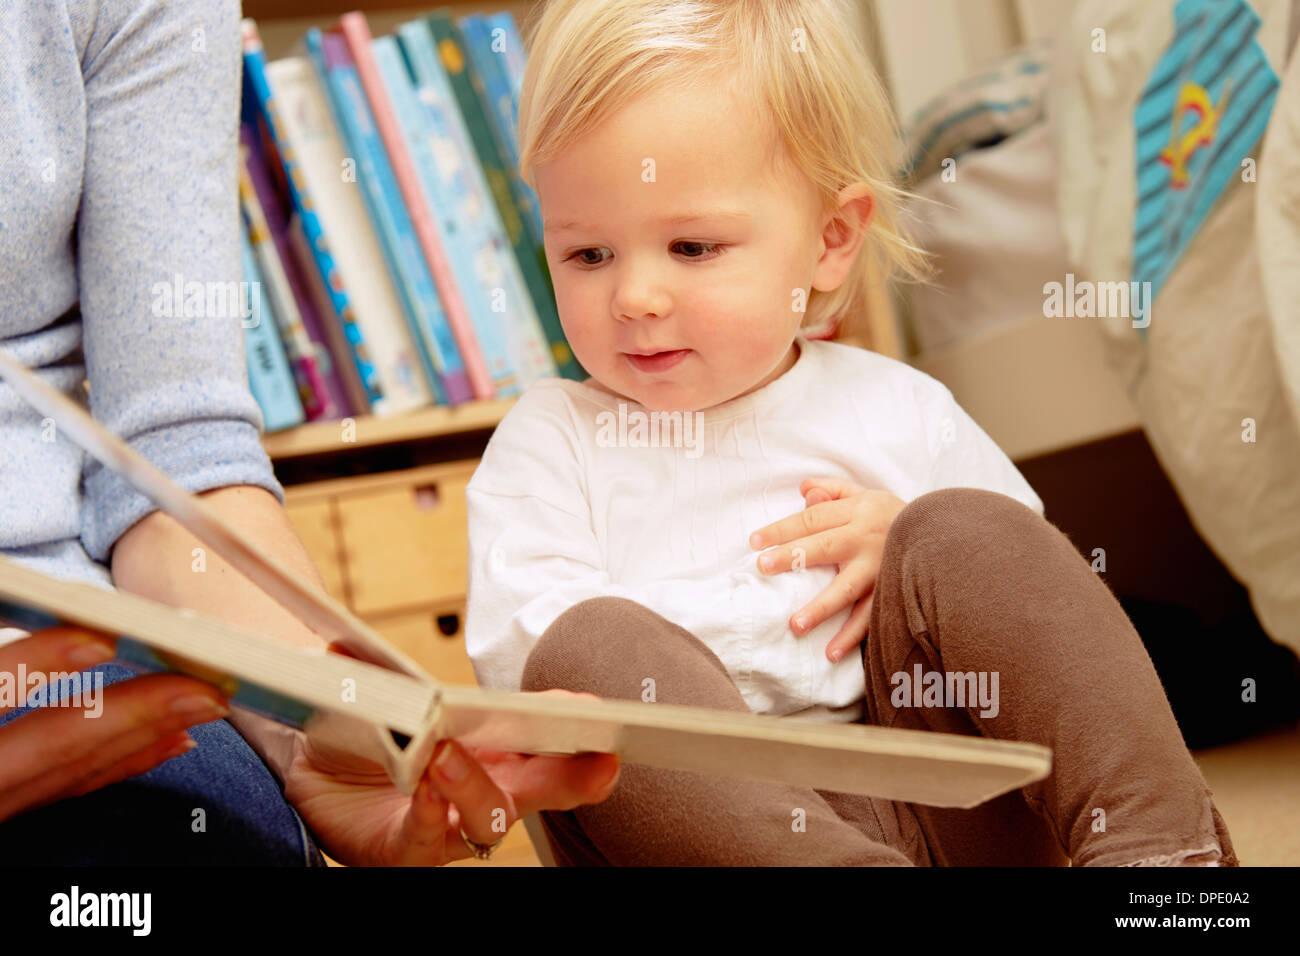 Mother reading picture book with baby daughter - Stock Image